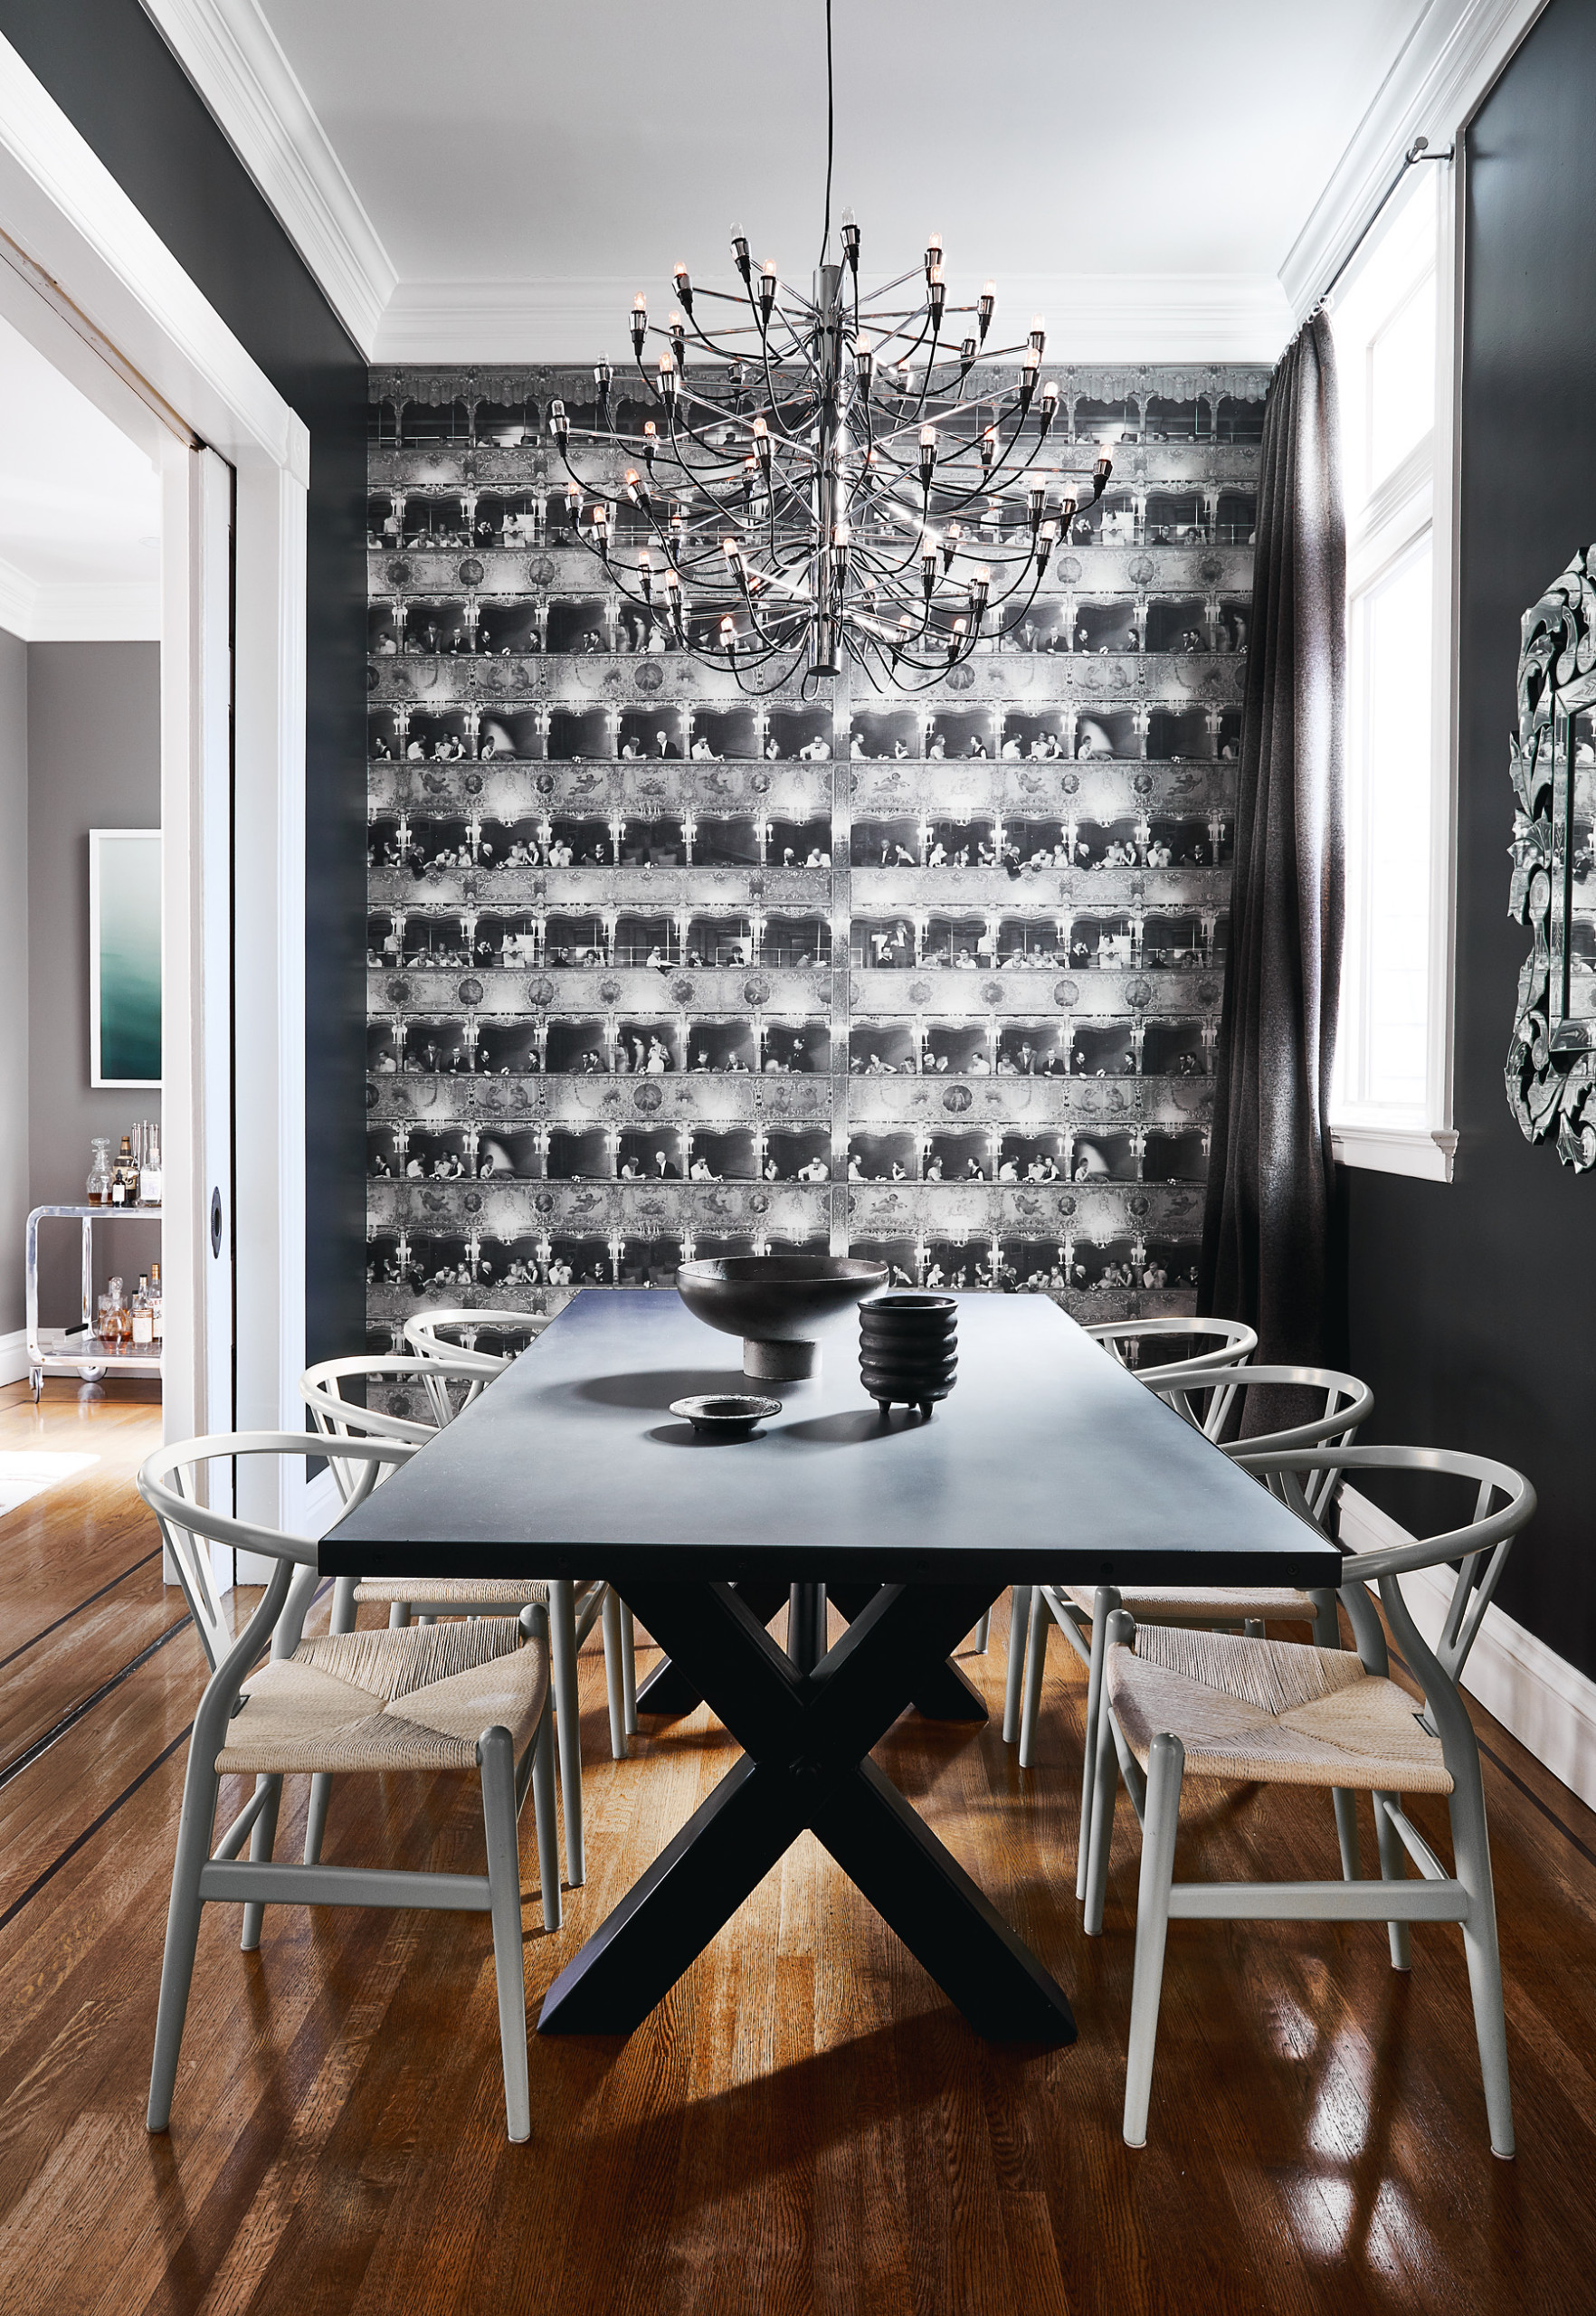 18 Beautiful Wallpaper Dining Room Pictures Ideas October 2020 Houzz